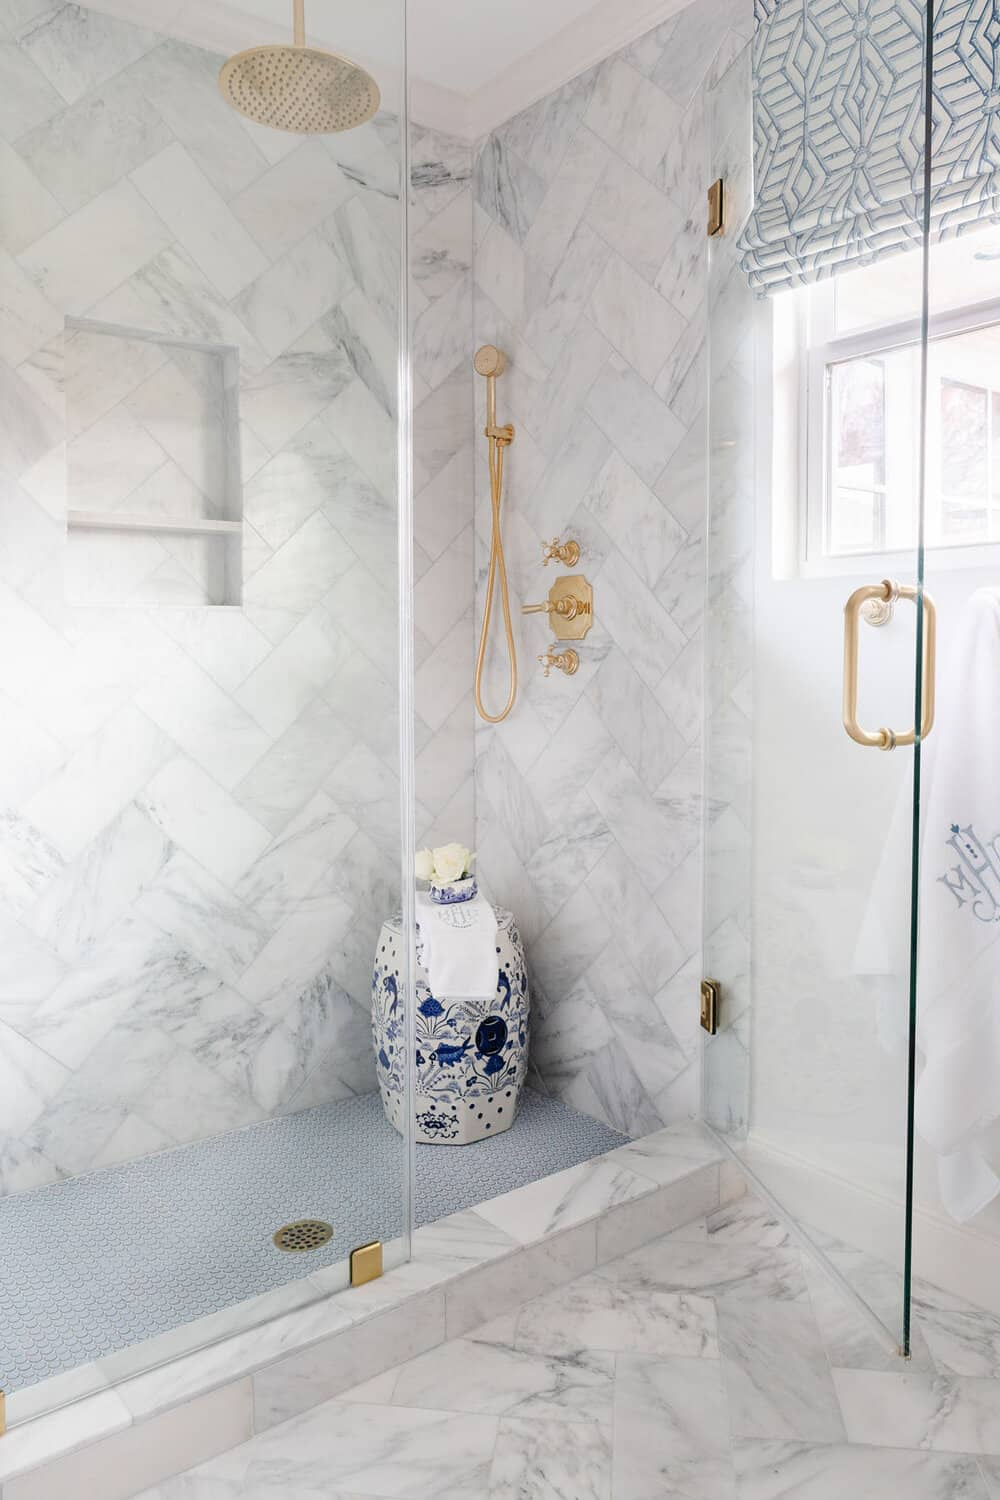 Marble tile used in shower.